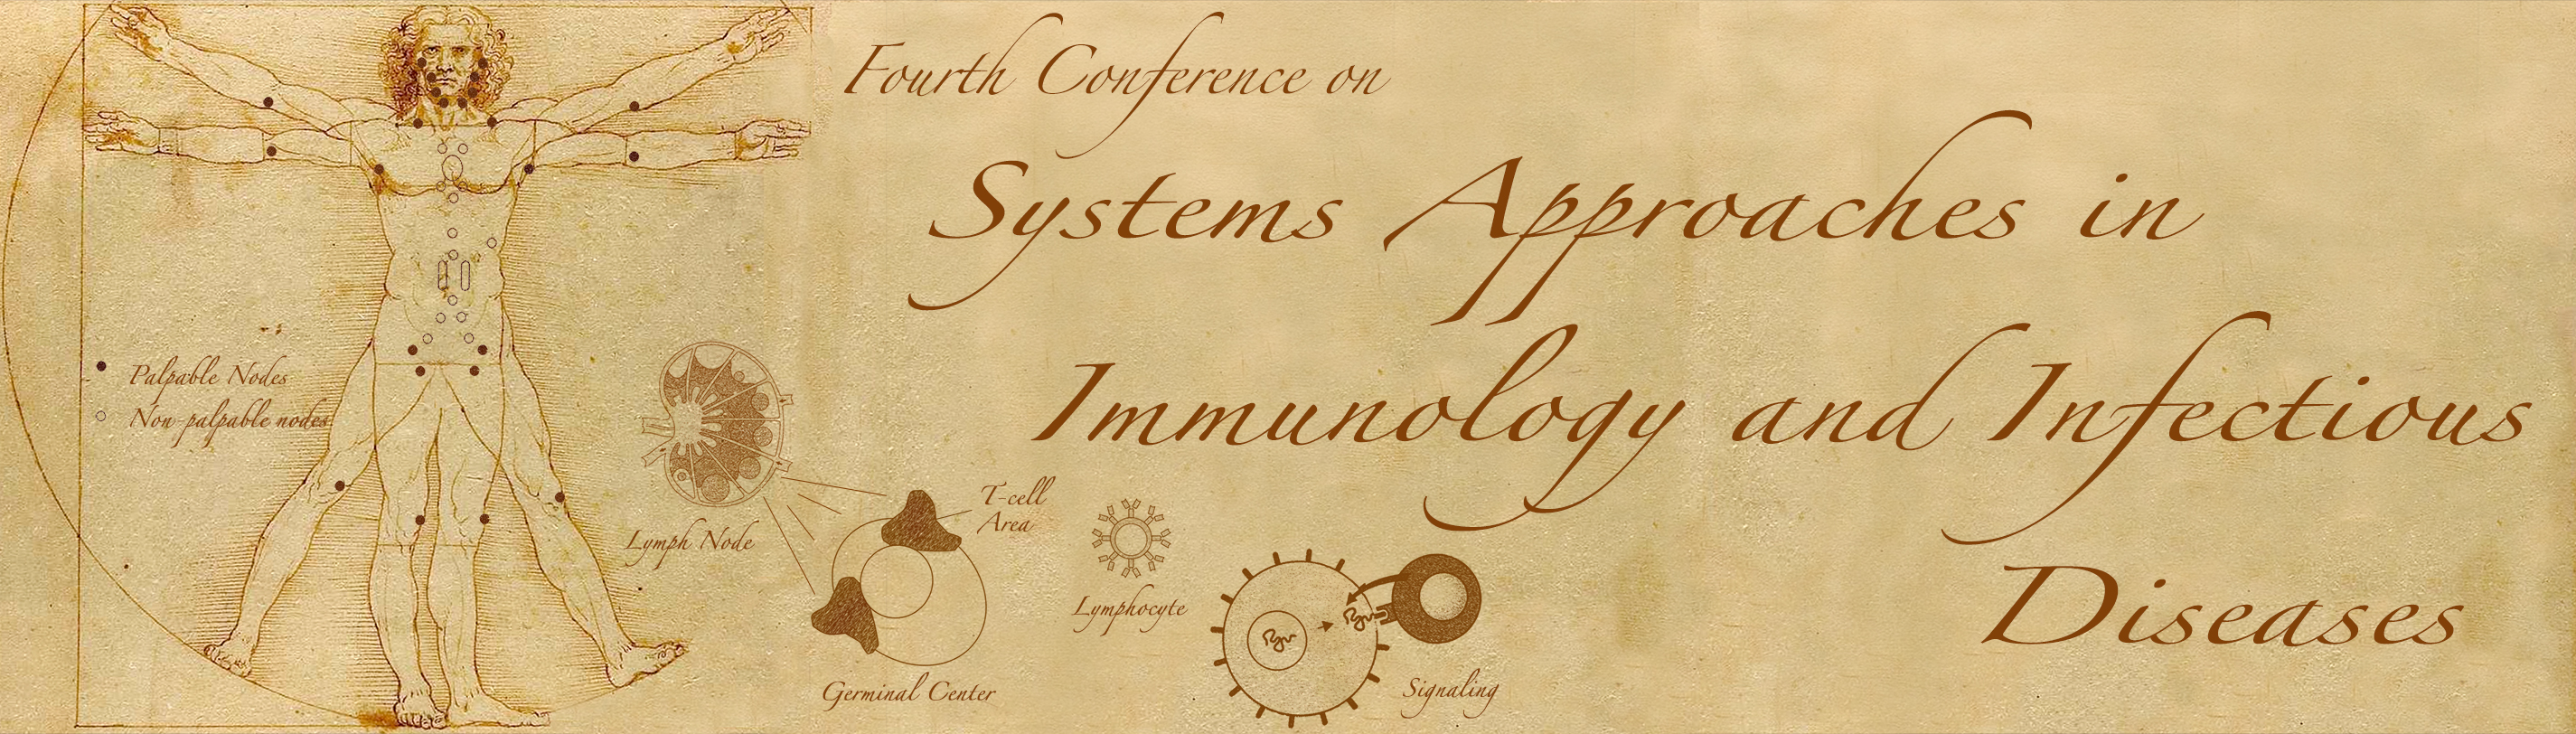 Systems Approaches in Immunology and Infectious Diseases